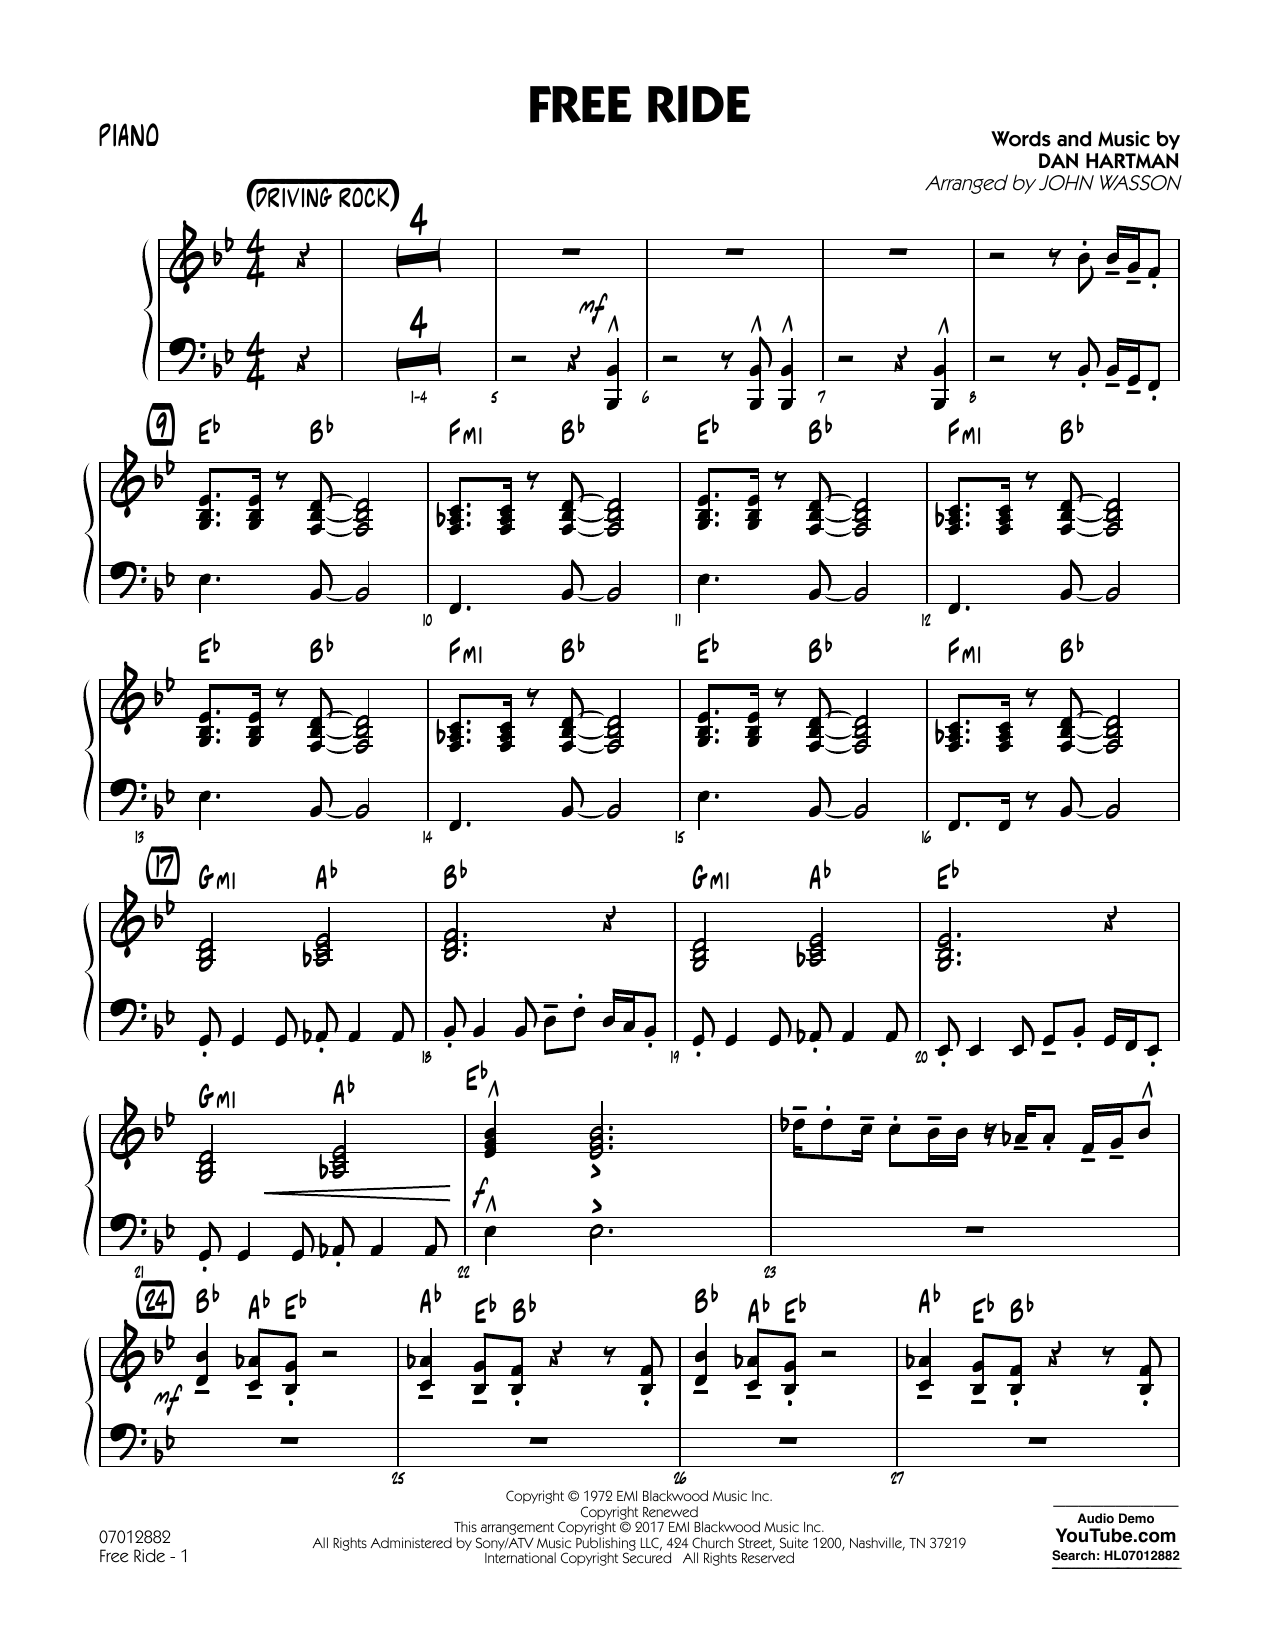 Free Ride - Piano Sheet Music